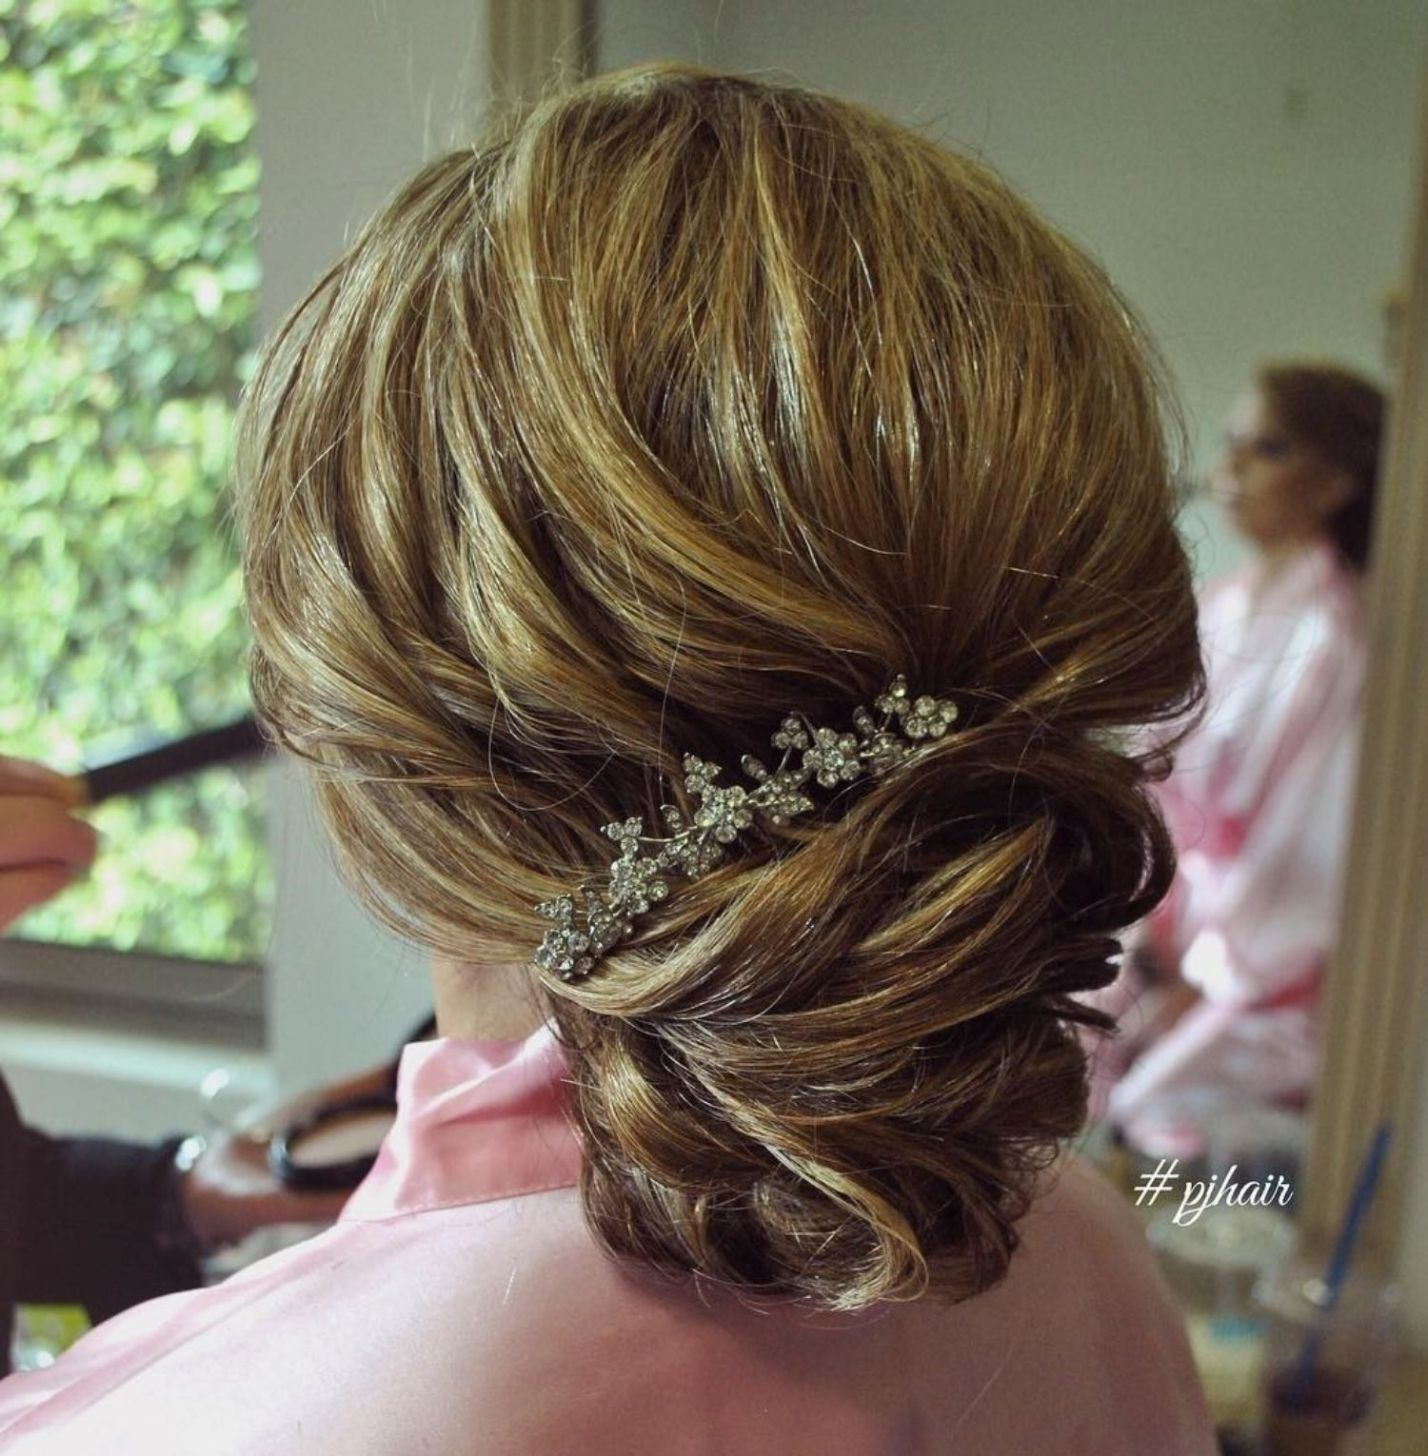 50 Ravishing Mother Of The Bride Hairstyles Mother Of The Bride Hair Hair Styles Hairdo Wedding